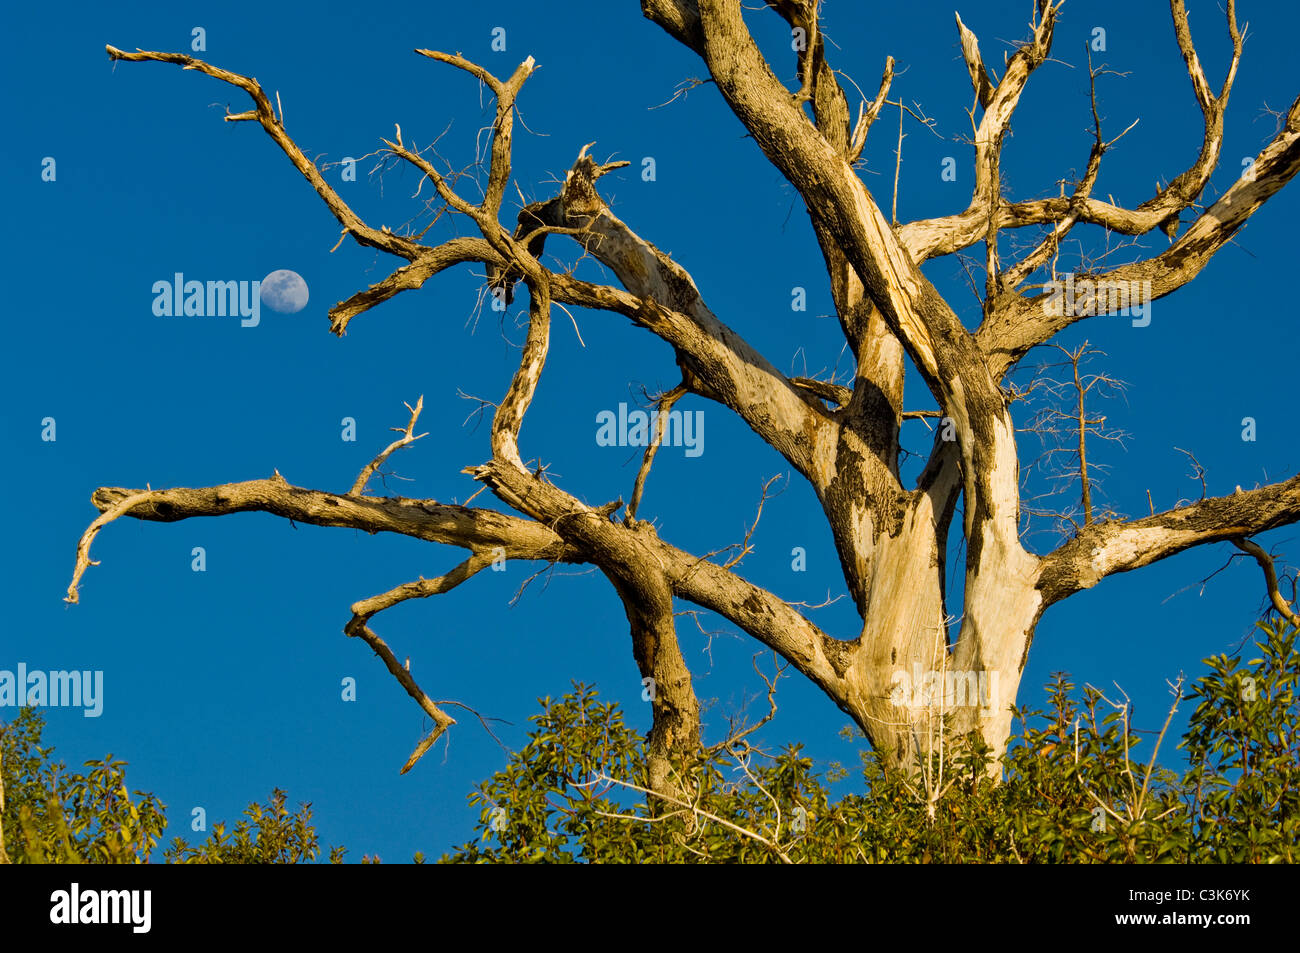 Moon and barren dead tree trunk and  branches, Ventana Wilderness, Los Padres National Forest, Big Sur coast, California - Stock Image